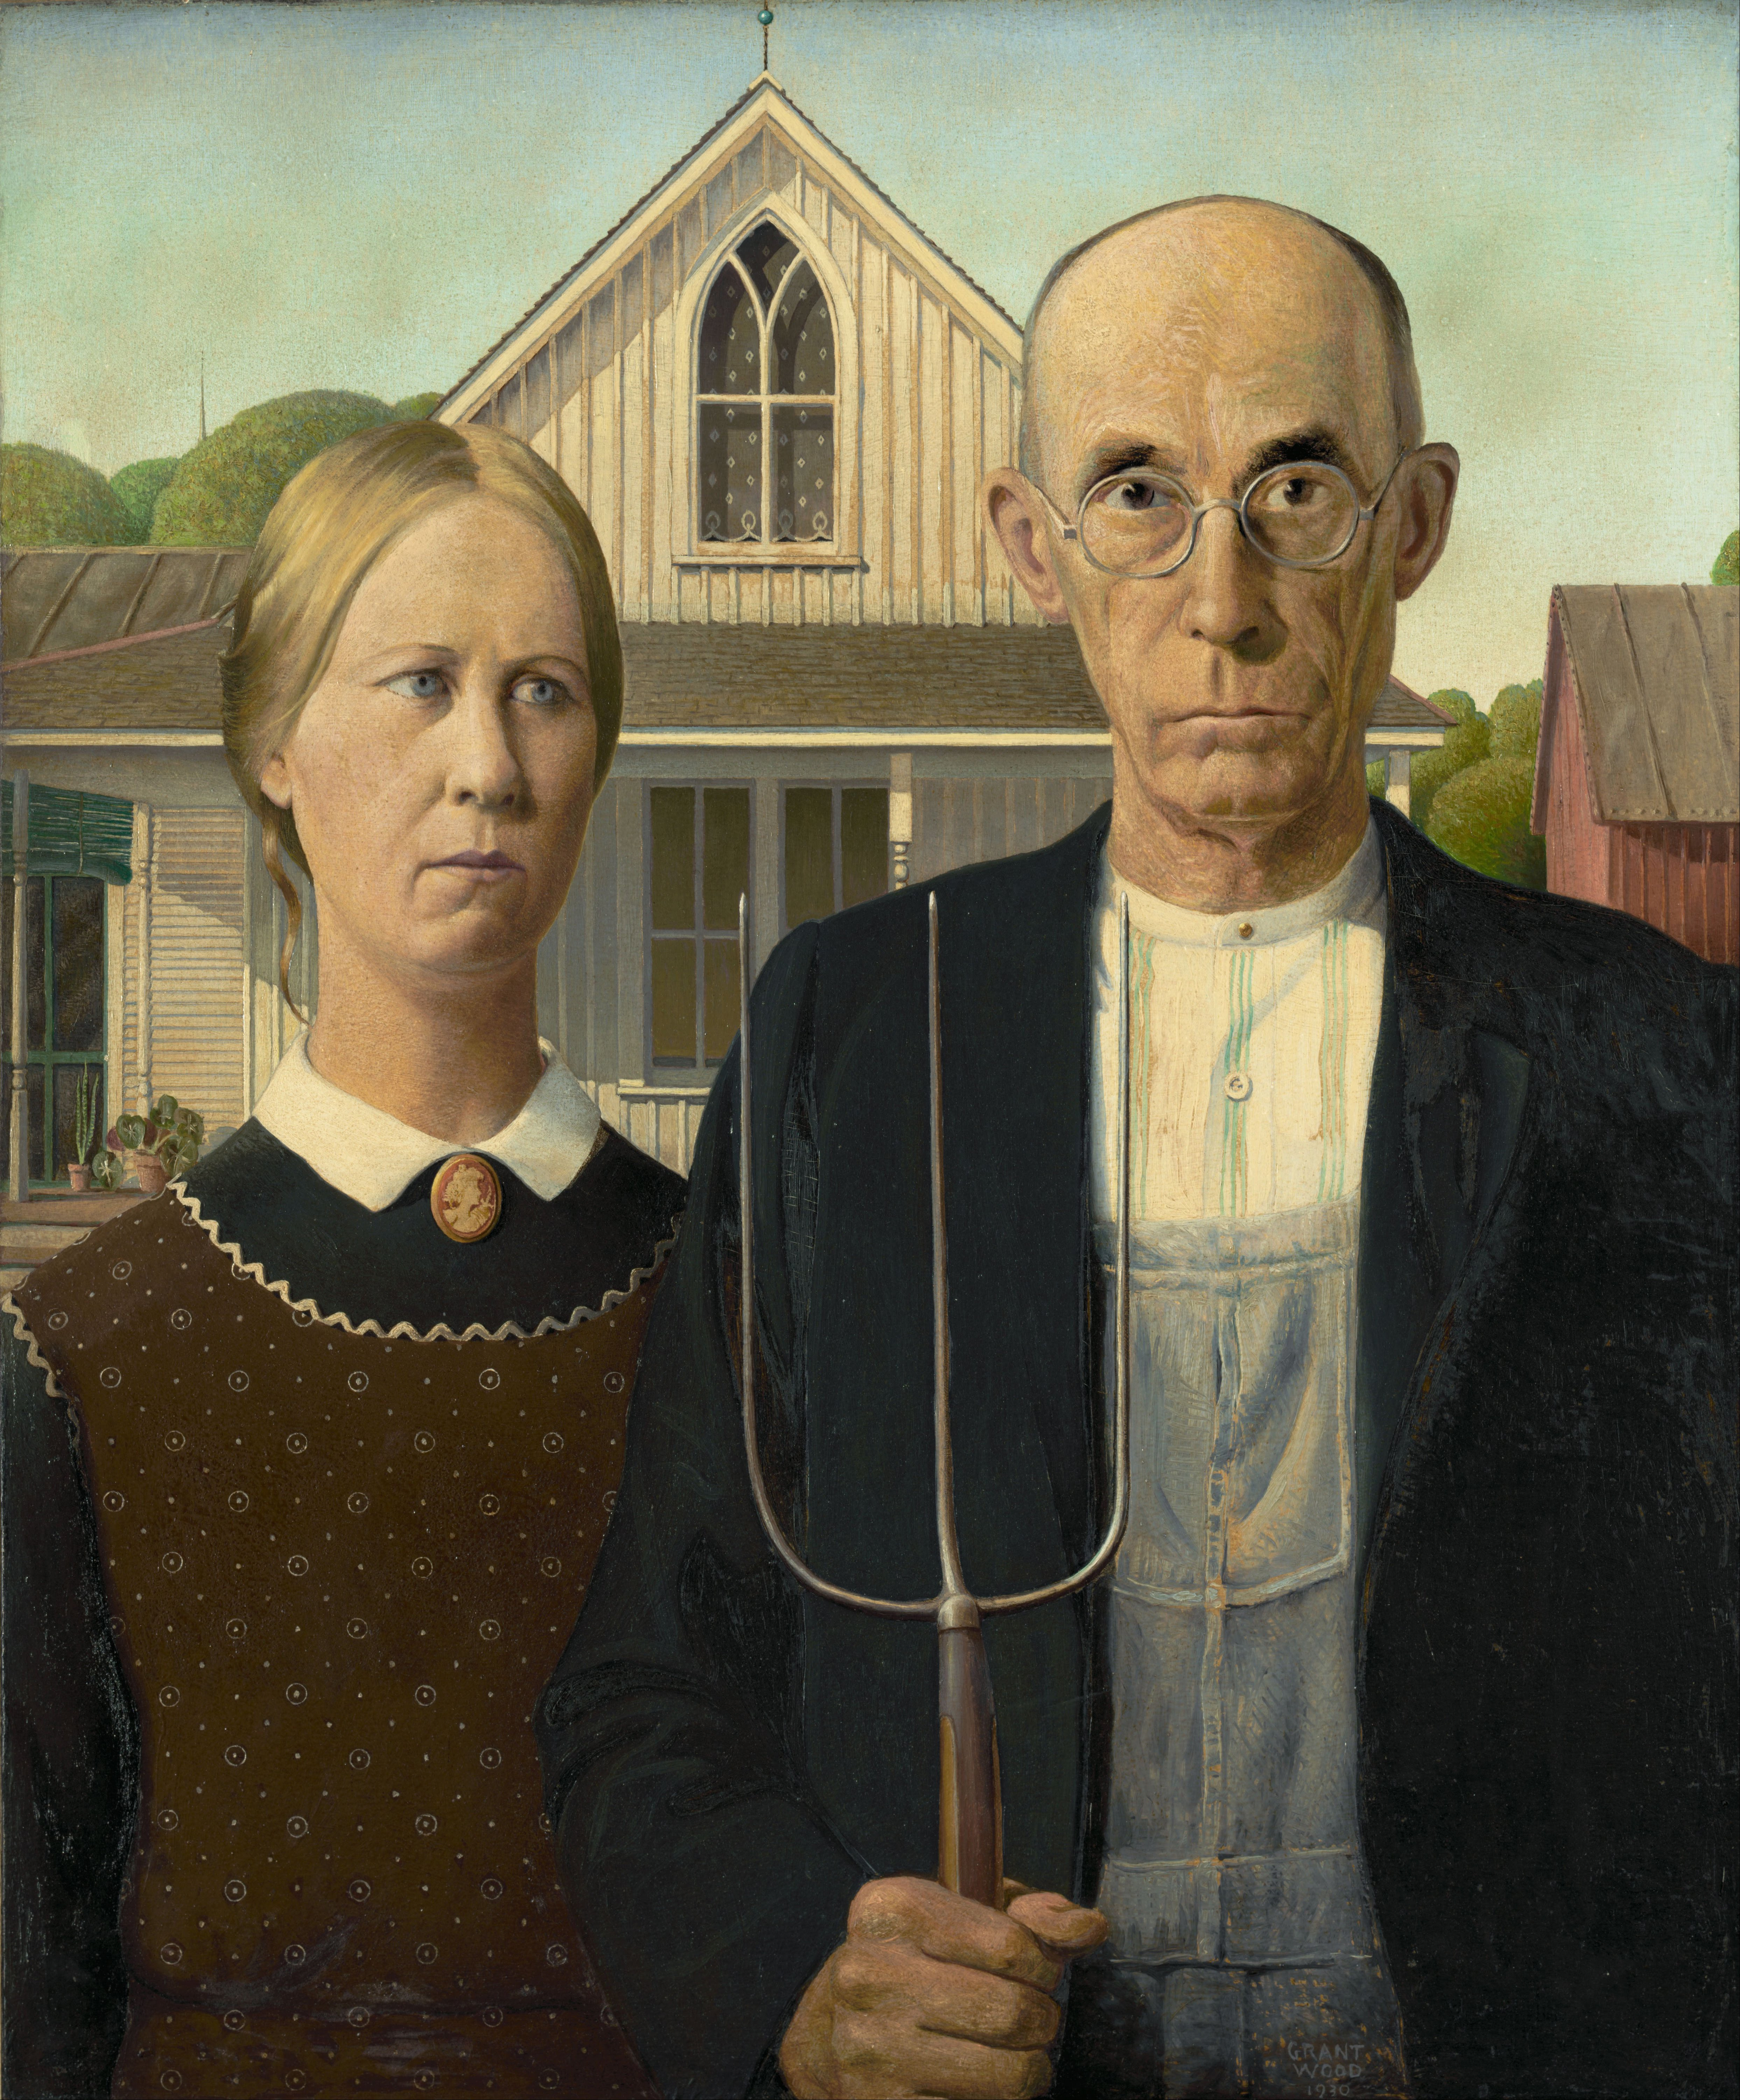 Grant_Wood_-_American_Gothic_-_Google_Art_Project.jpg